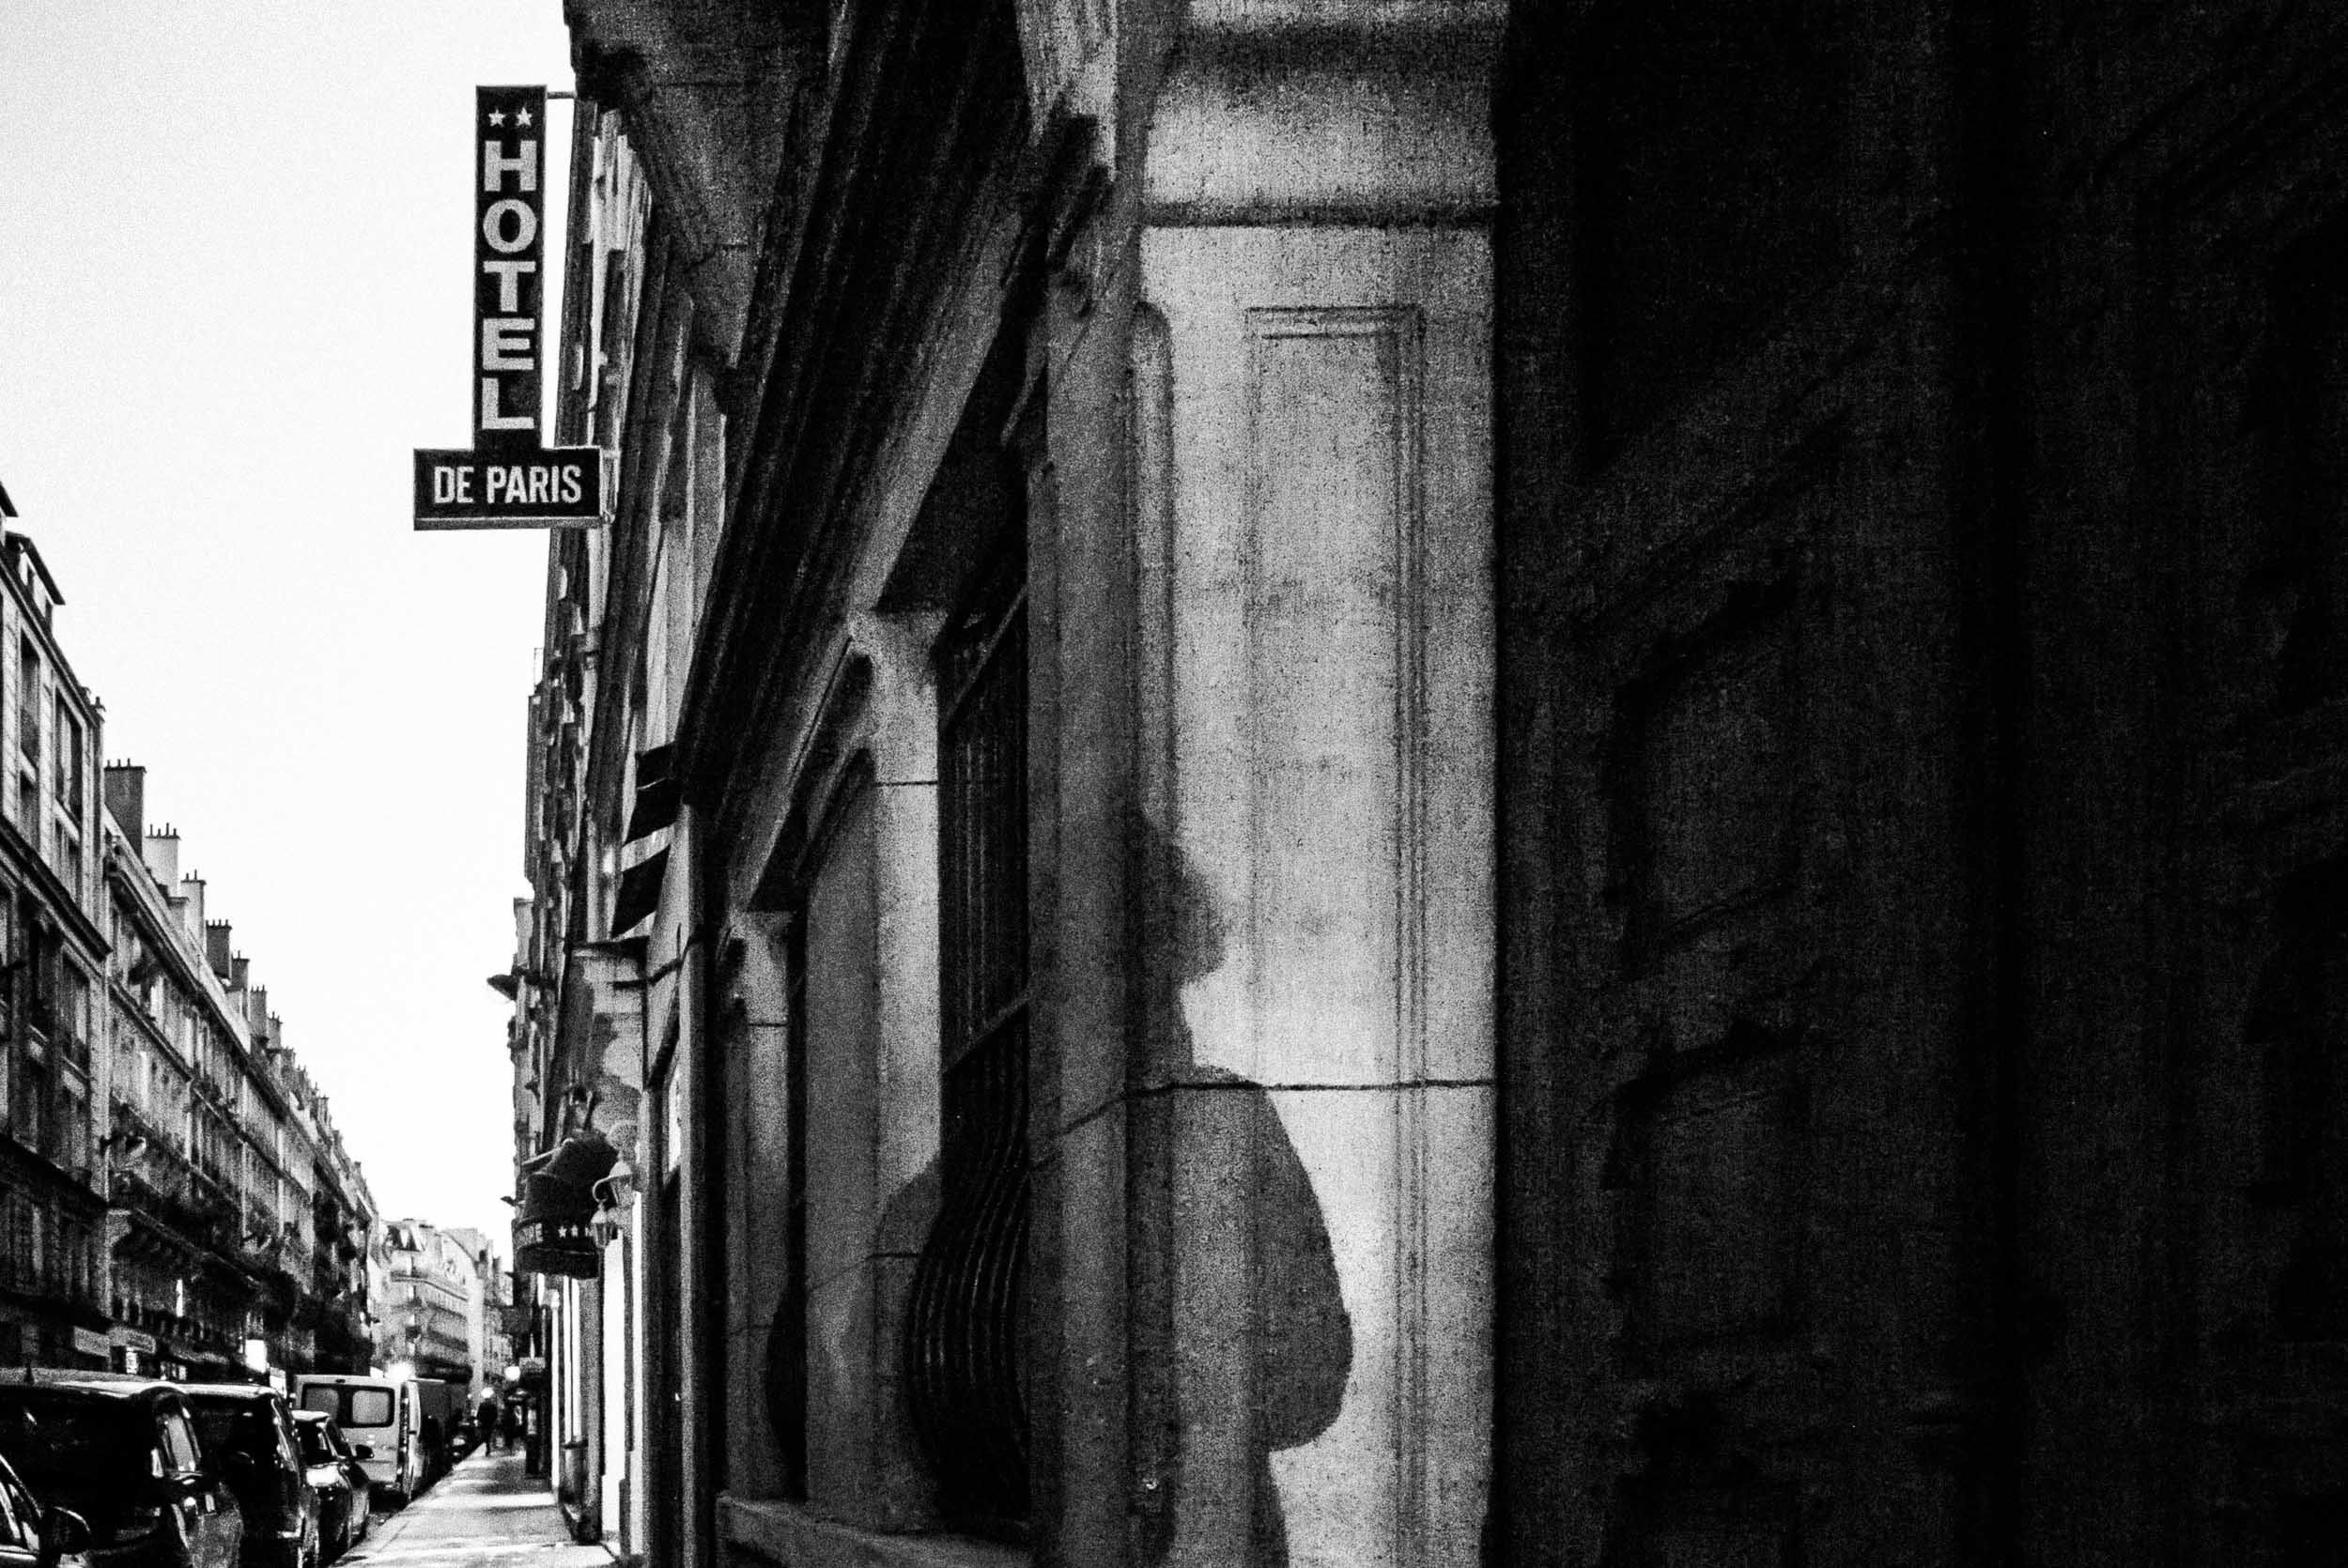 shadow of a woman on a building with Hotel de Paris sign. Paris street photography by Merja Varkemaa.